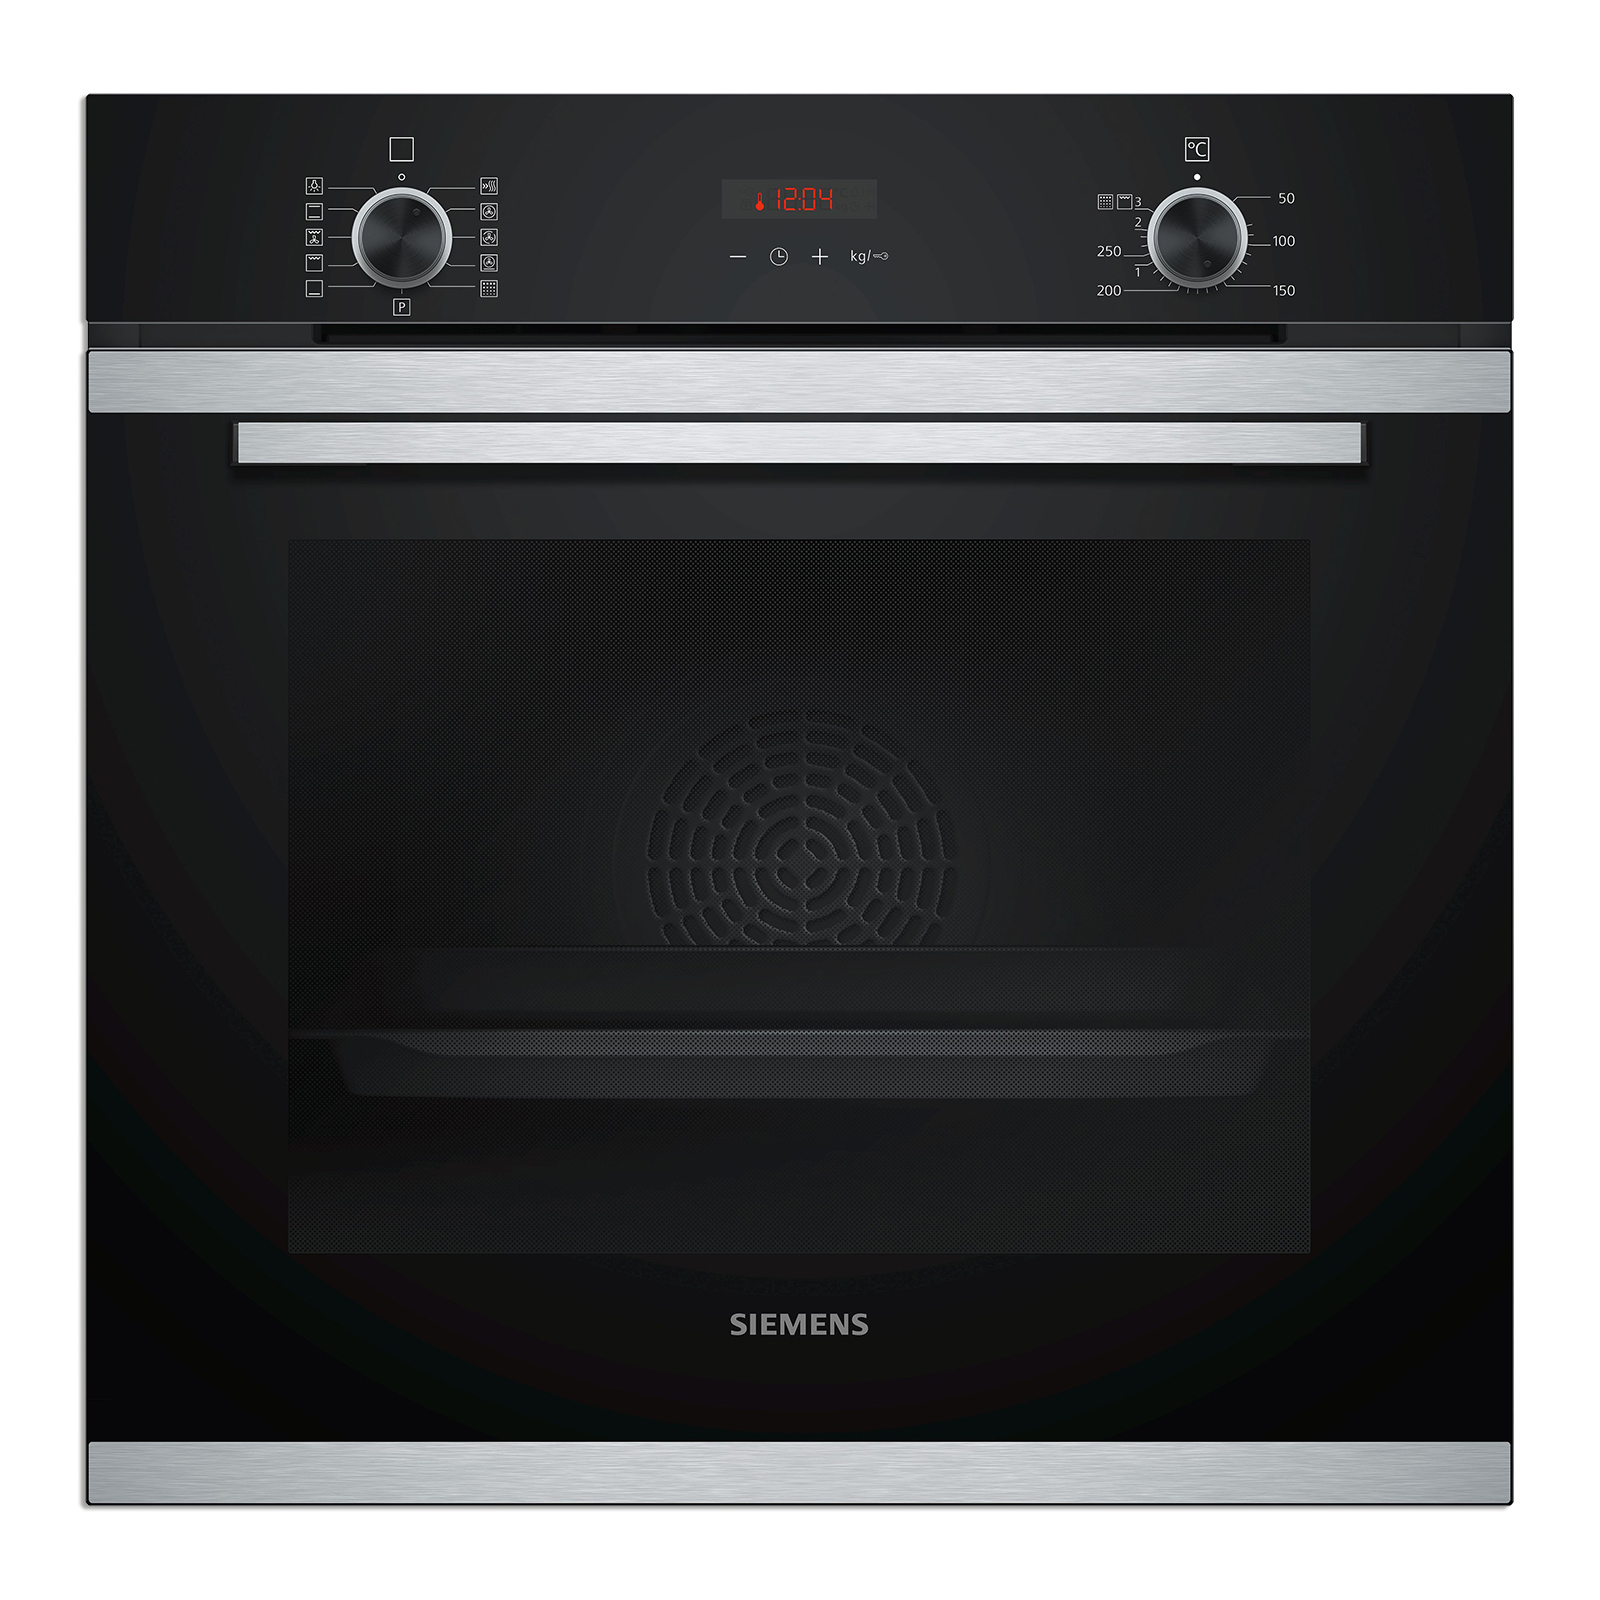 SIEMENS Backofen-Set PQ212KA00Z - A